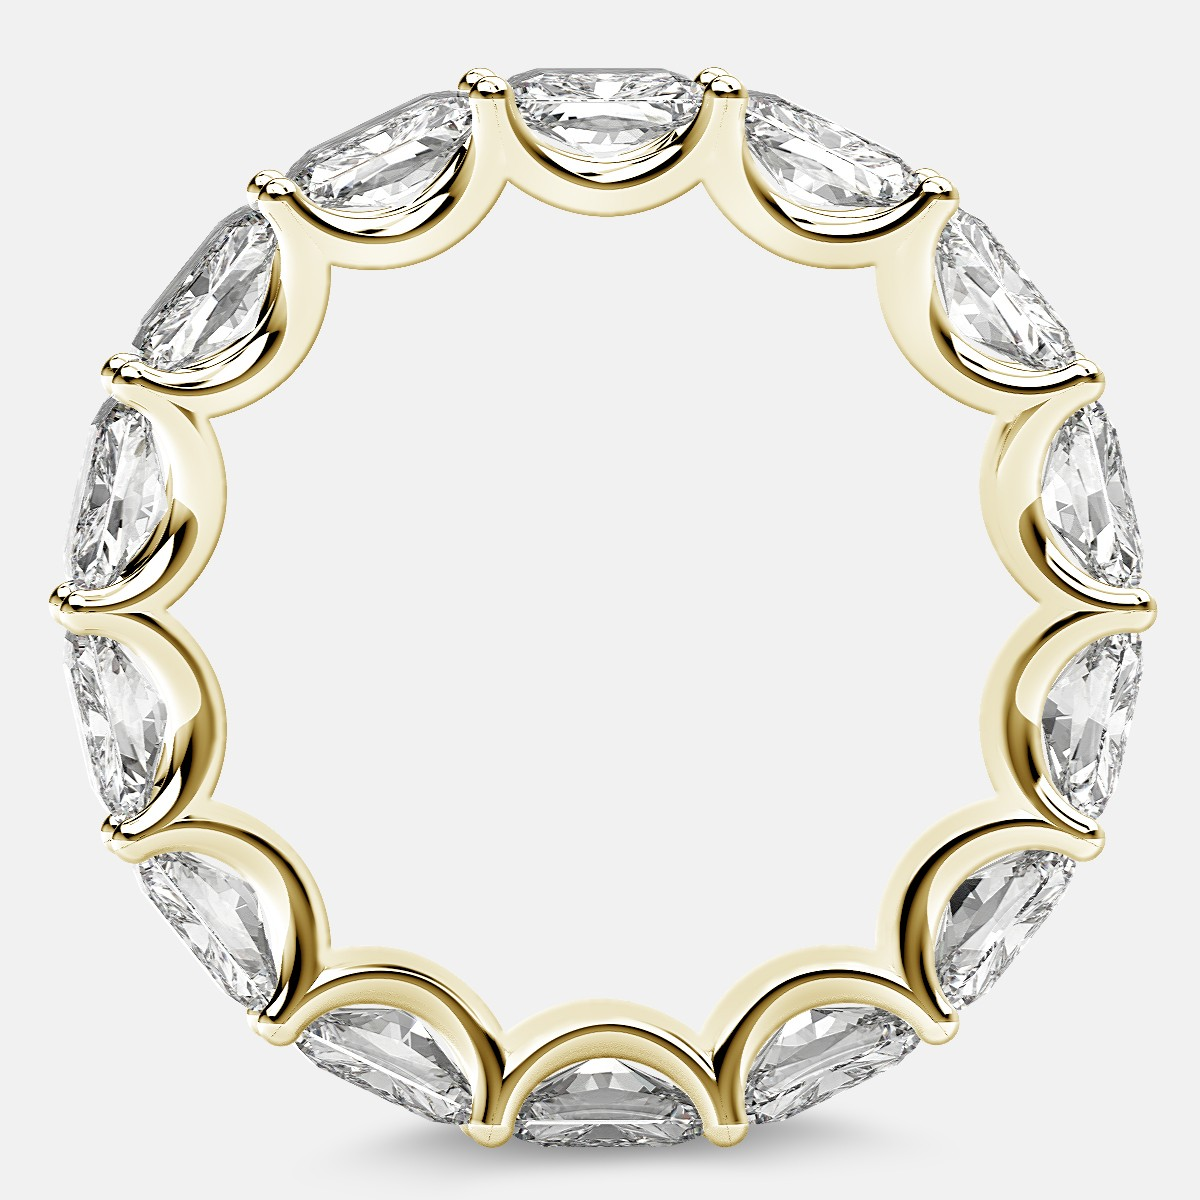 Curved Prong Eternity Ring with Radiant Diamonds in 18k Yellow Gold